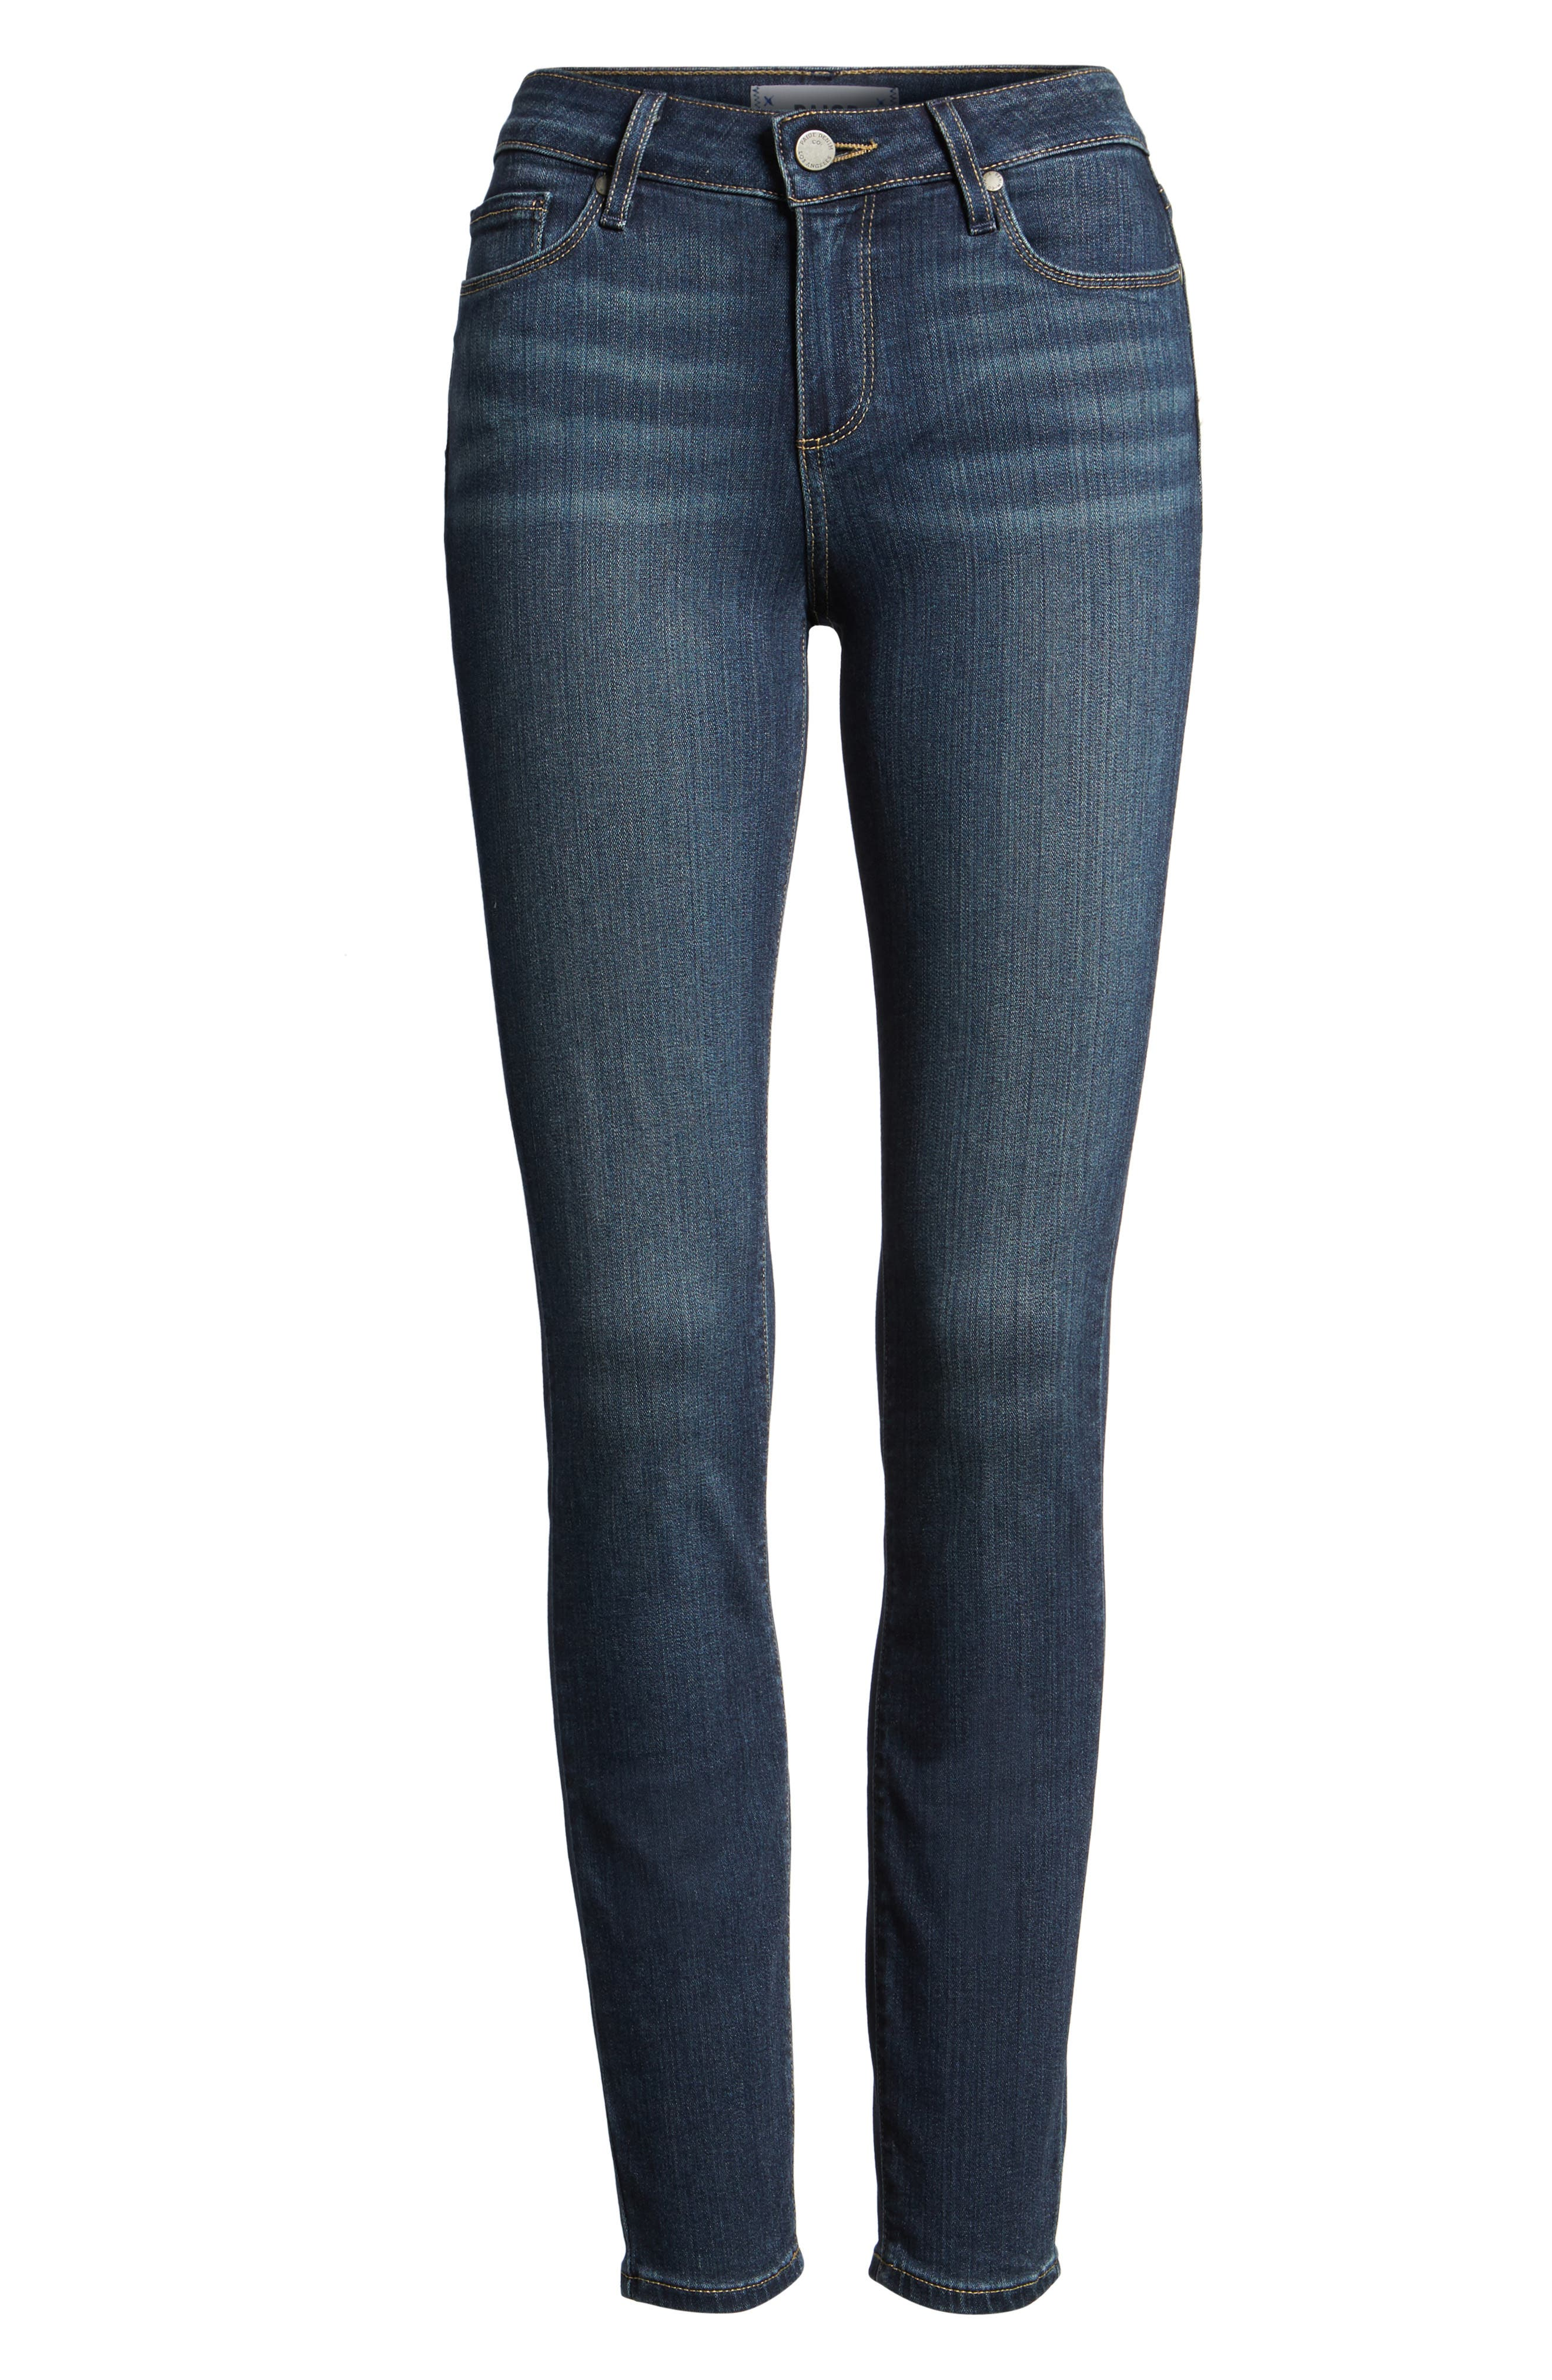 Transcend - Verdugo Ankle Skinny Jeans,                             Alternate thumbnail 8, color,                             NOTTINGHAM